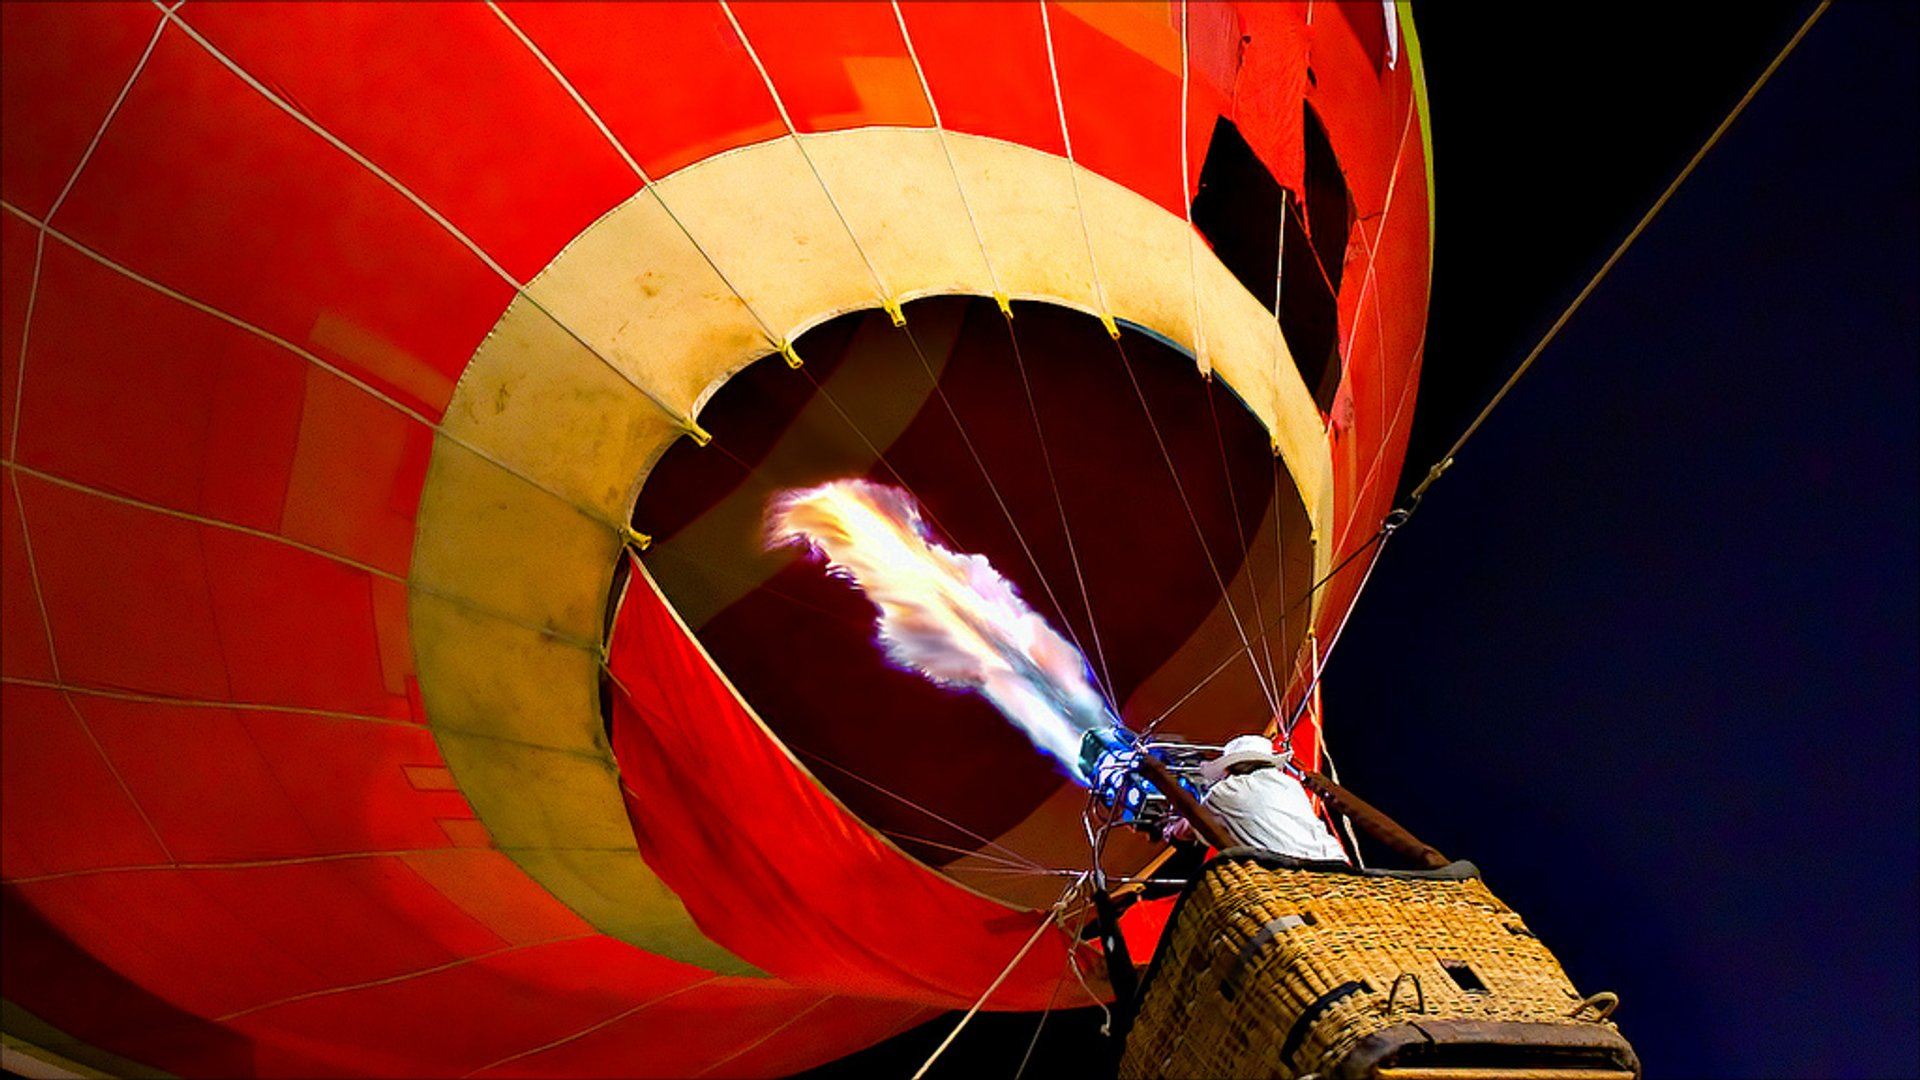 Hot Air Ballooning in India 2019 - Best Time